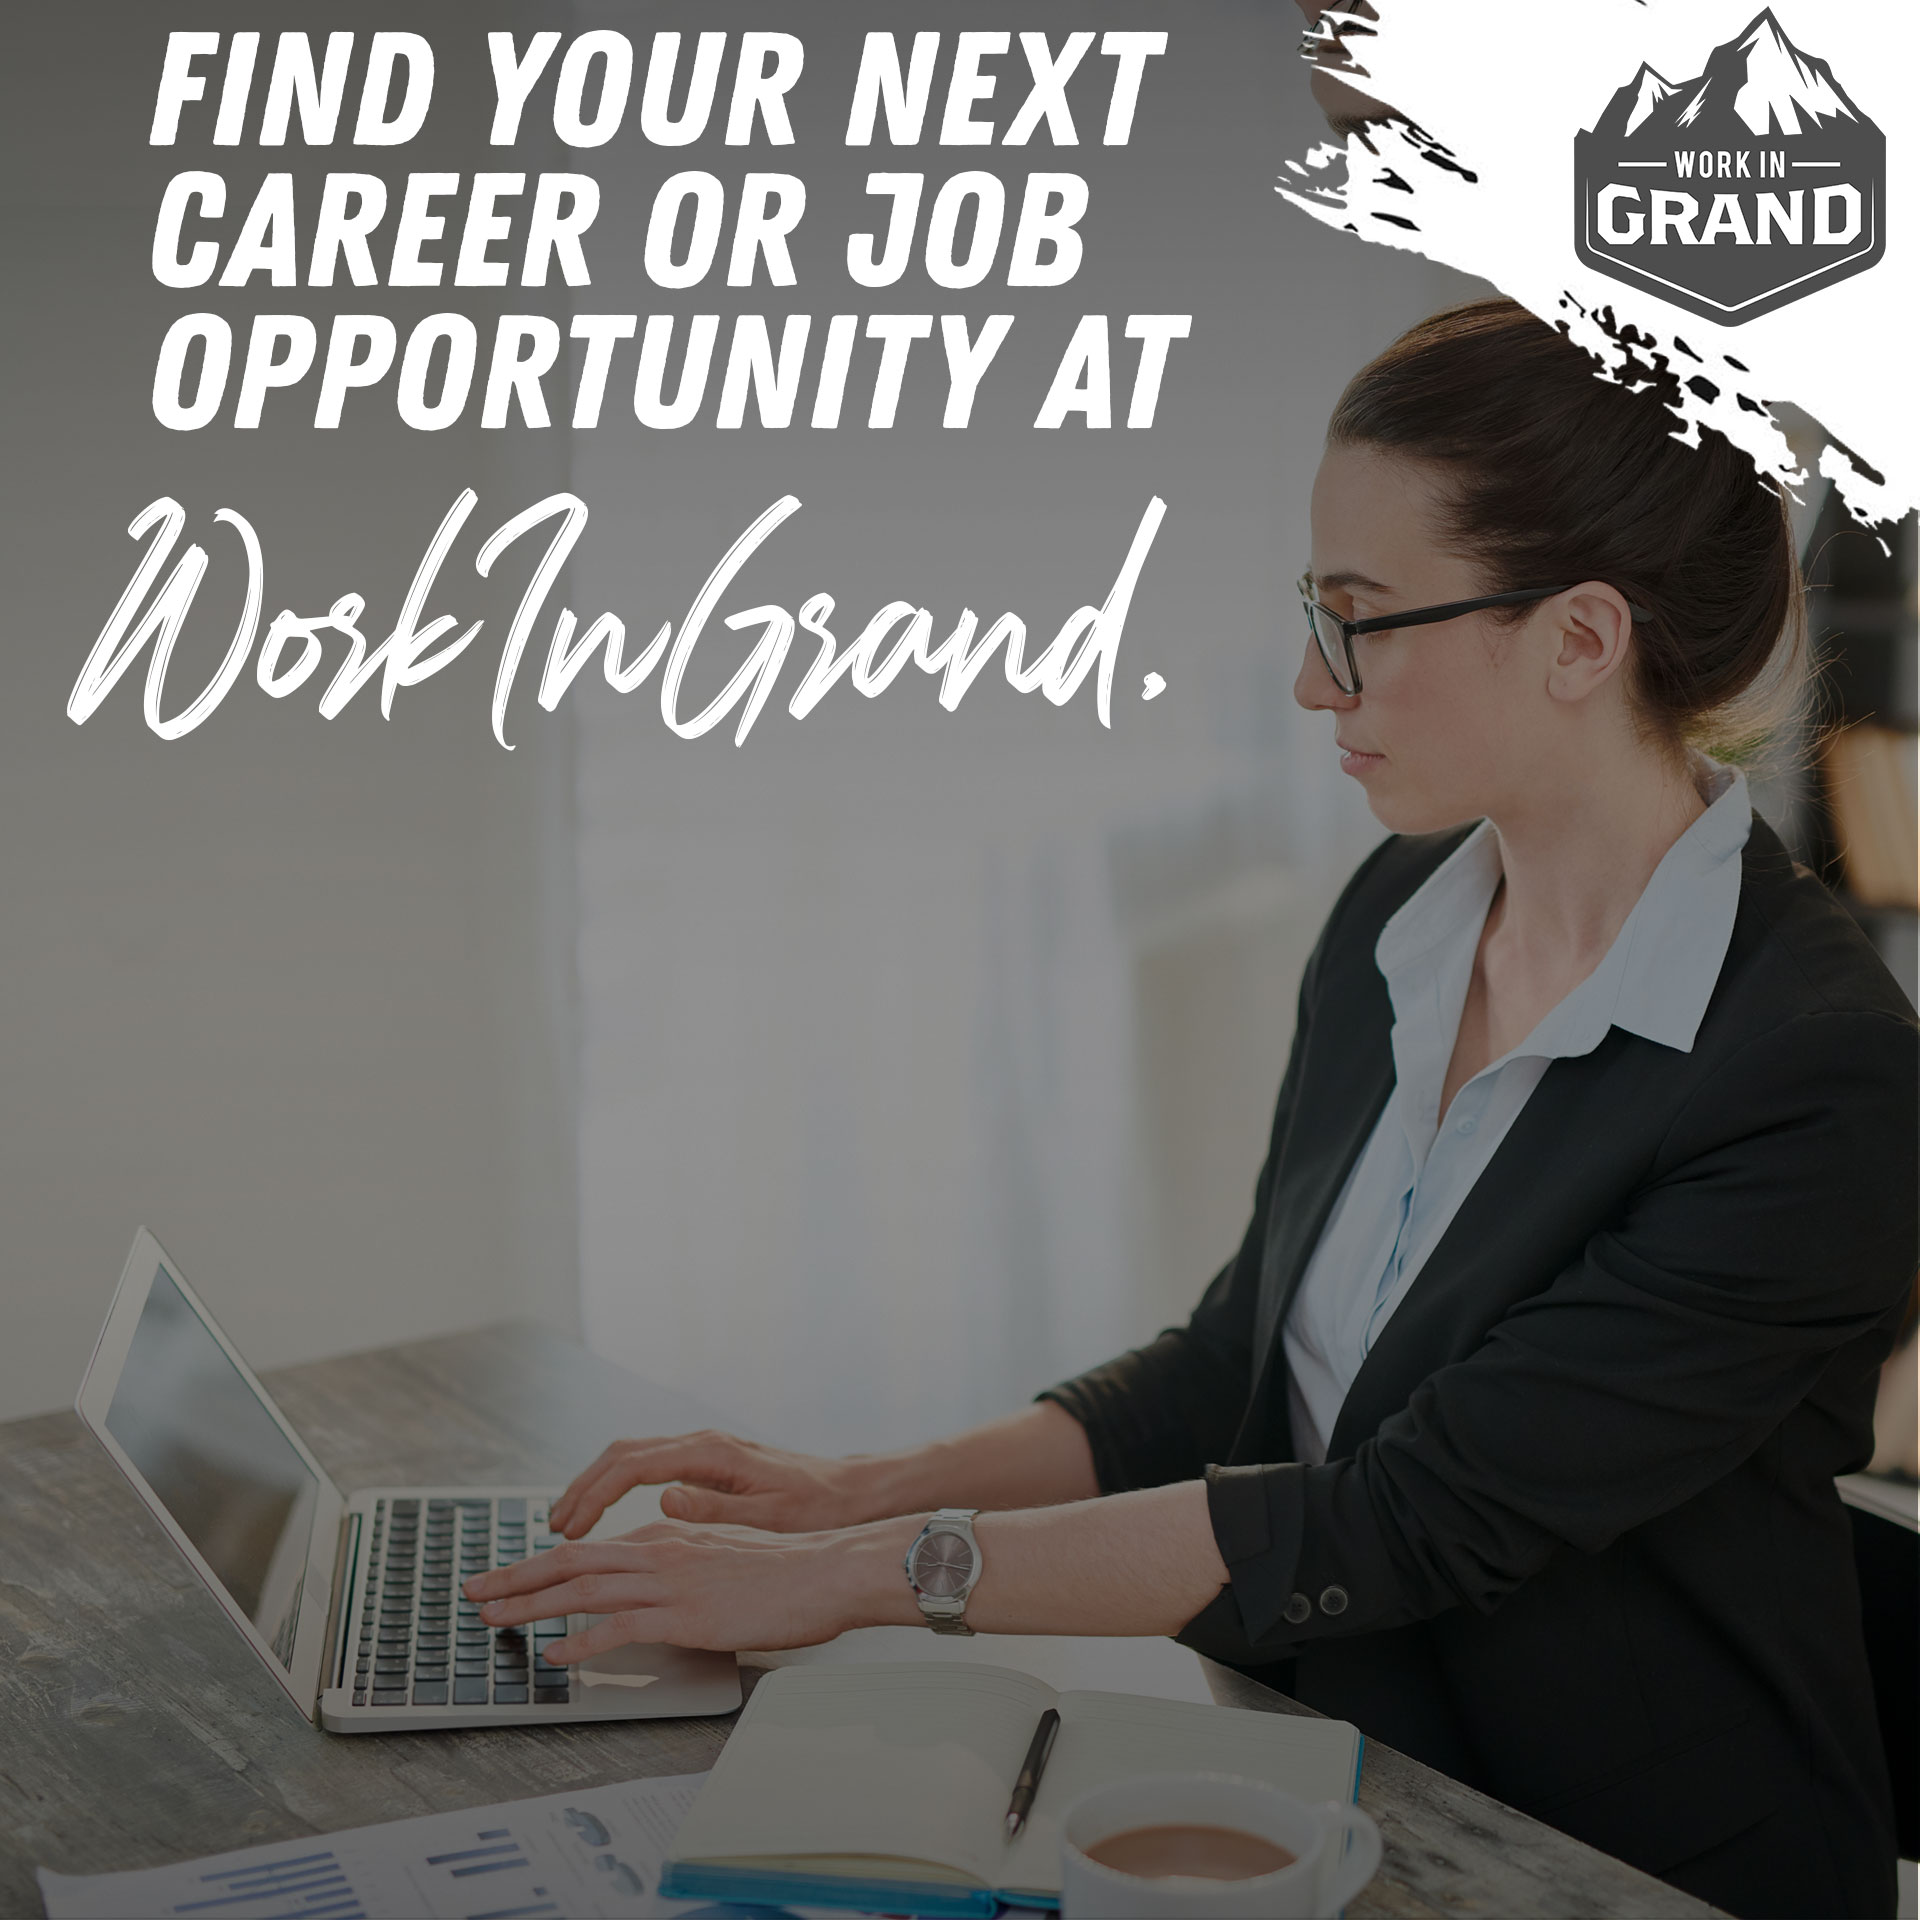 Find Your Next Career or Job Opportunity at WorkInGrand